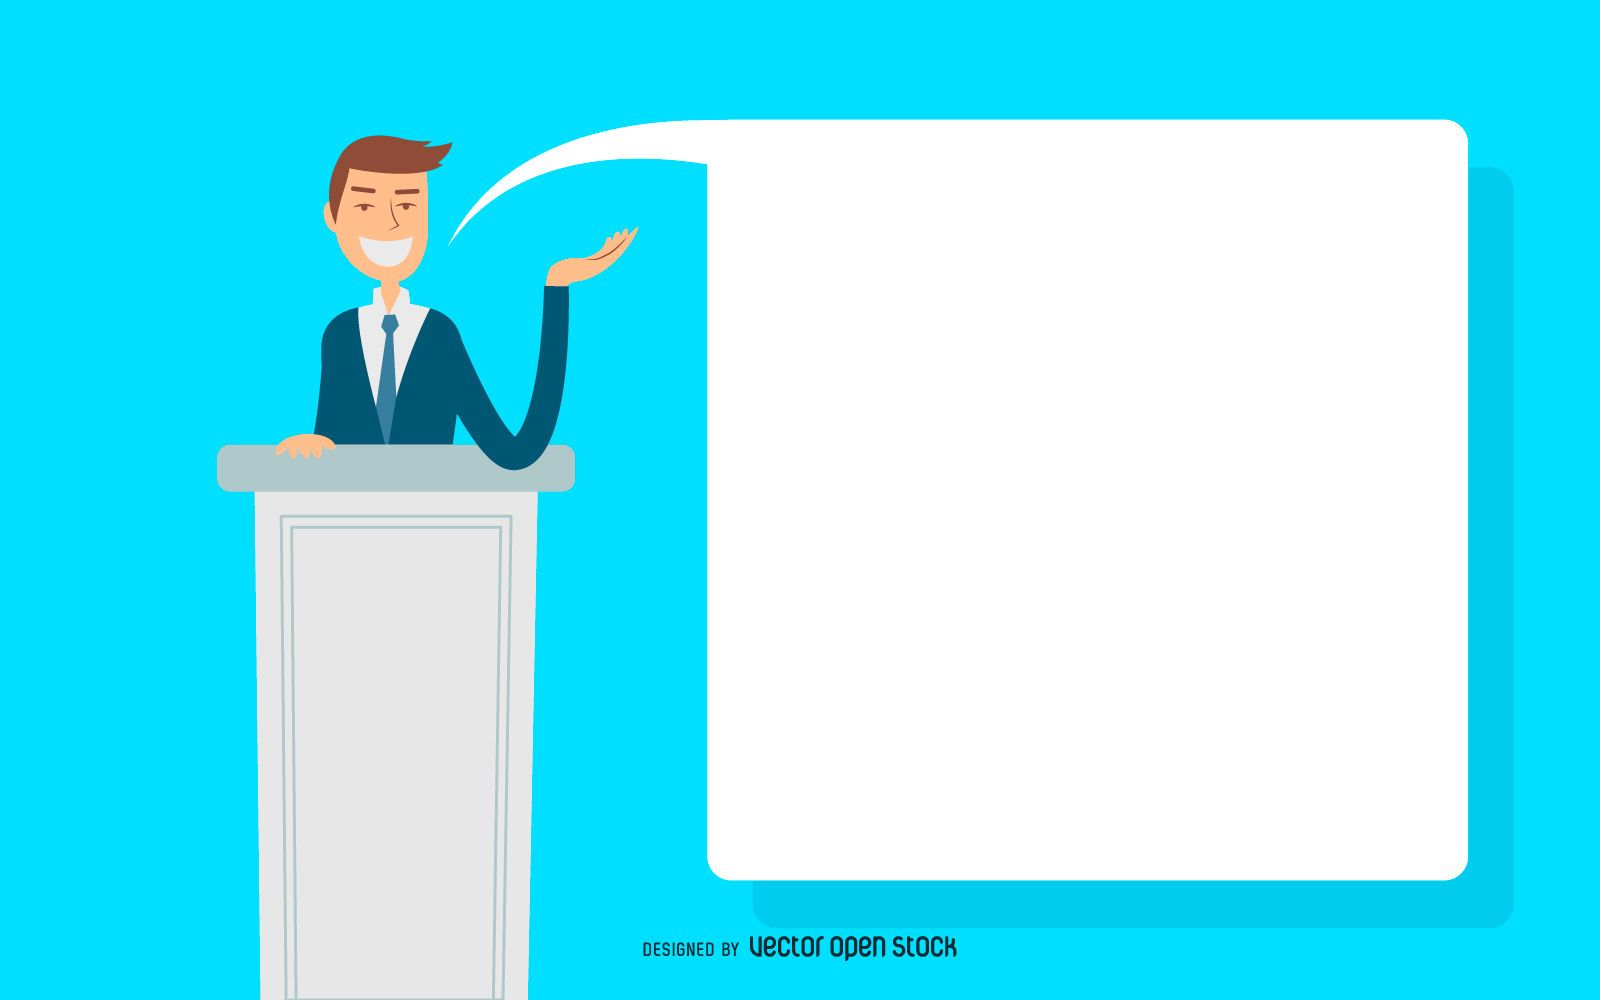 Business man presentation illustration - Vector download